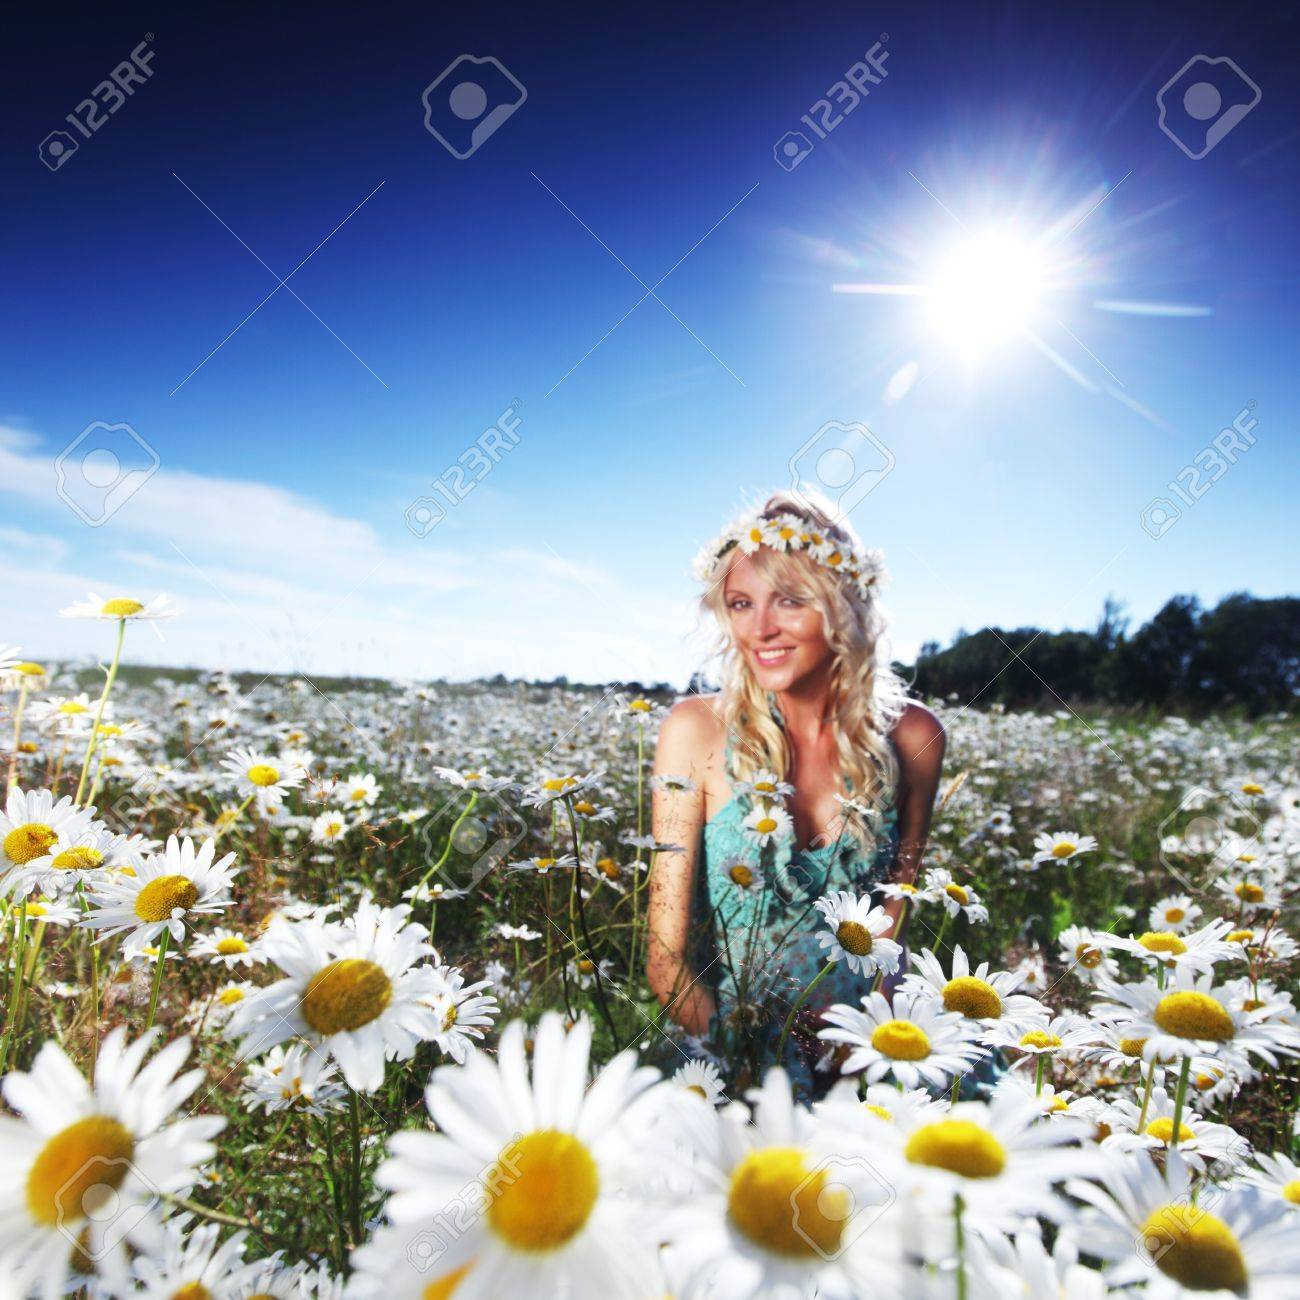 beautiful girl  in dress on the sunny daisy flowers field Stock Photo - 11950554